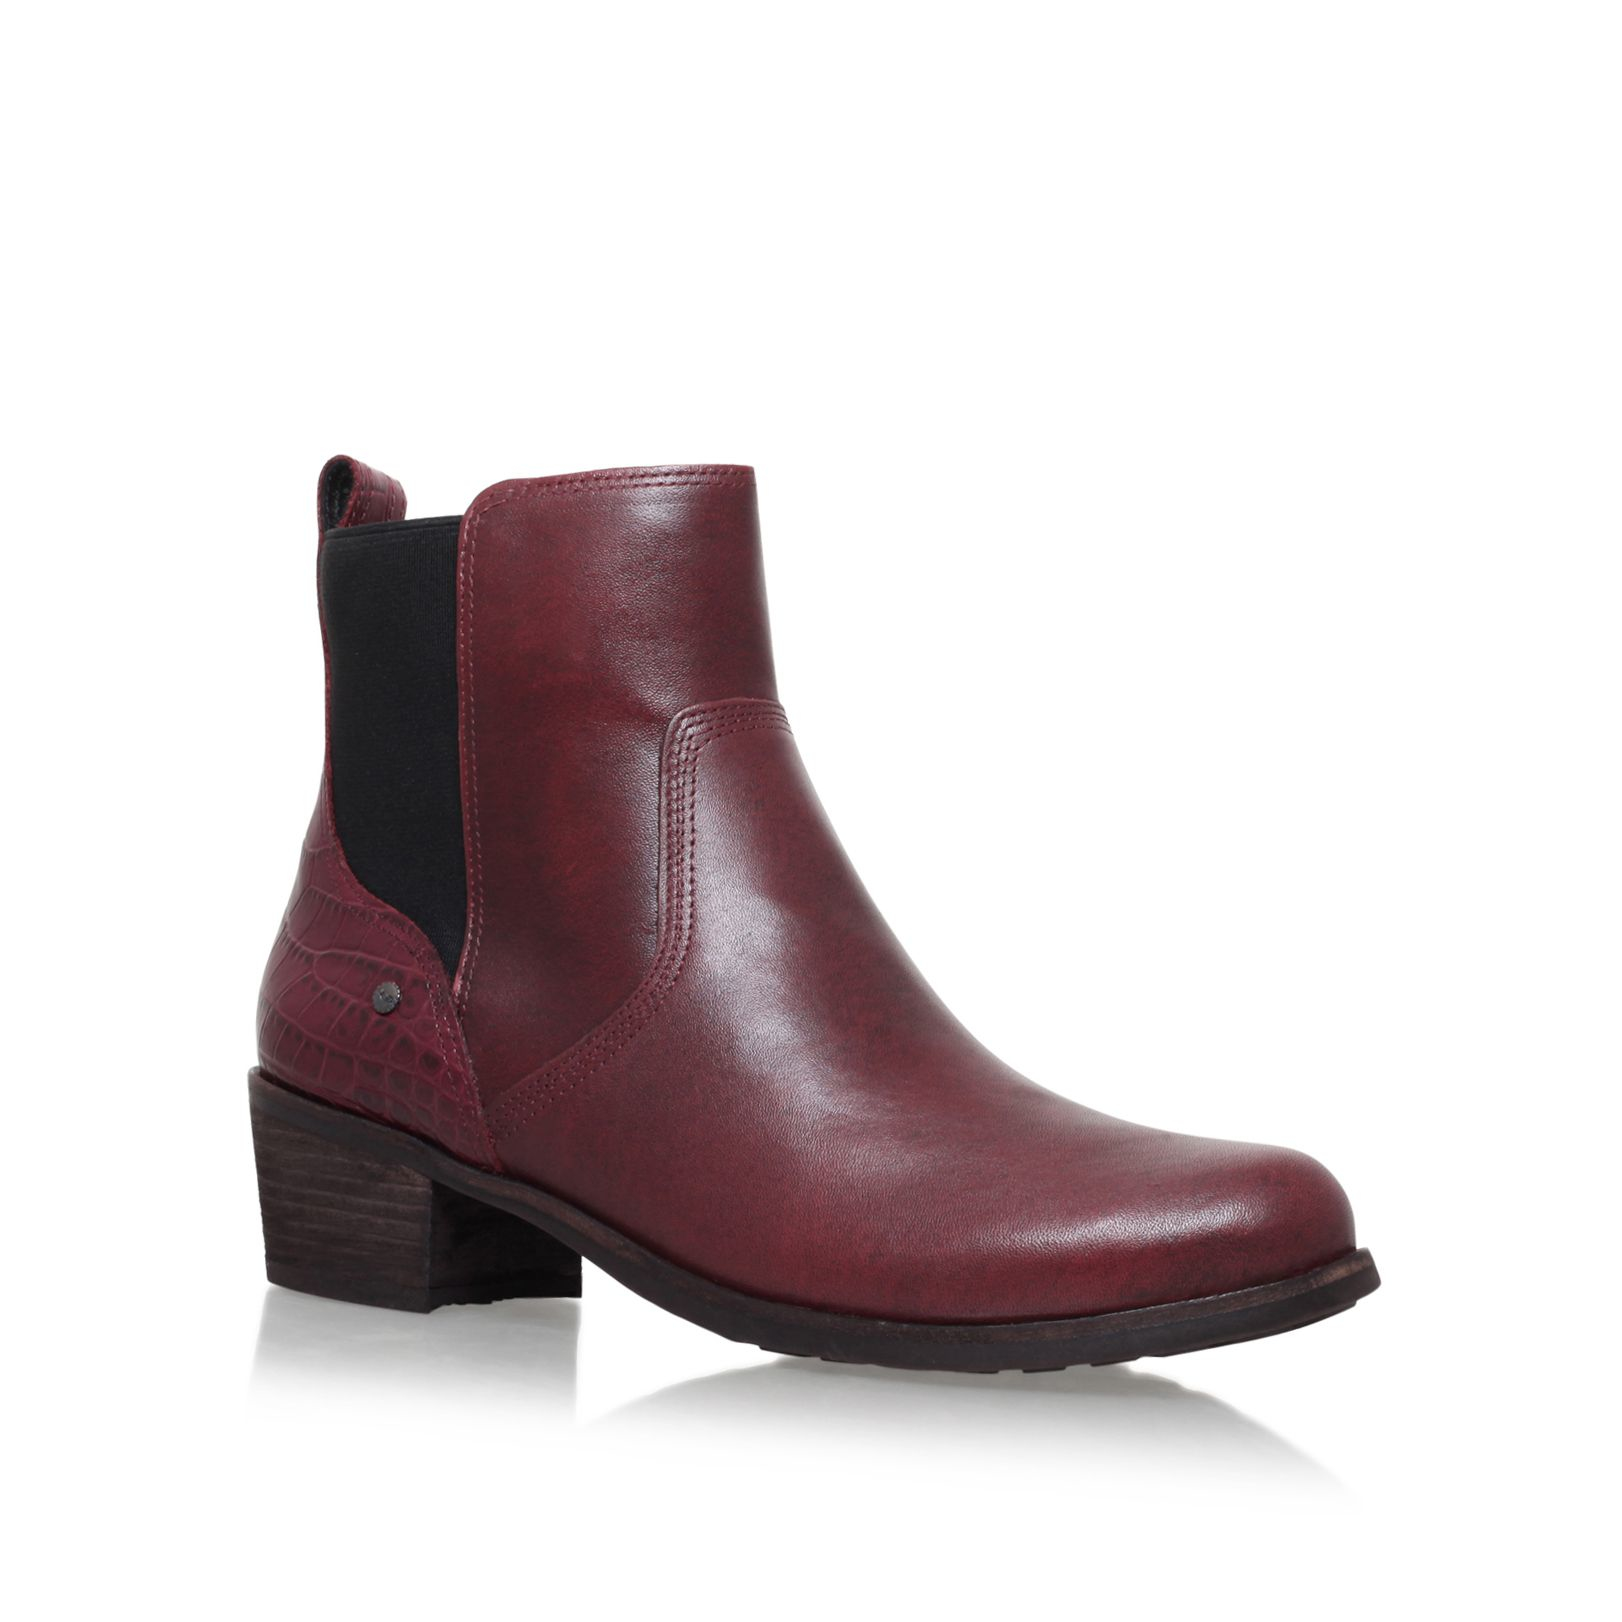 fa2d11f0182 Ugg Ankle Boots House Of Fraser - cheap watches mgc-gas.com